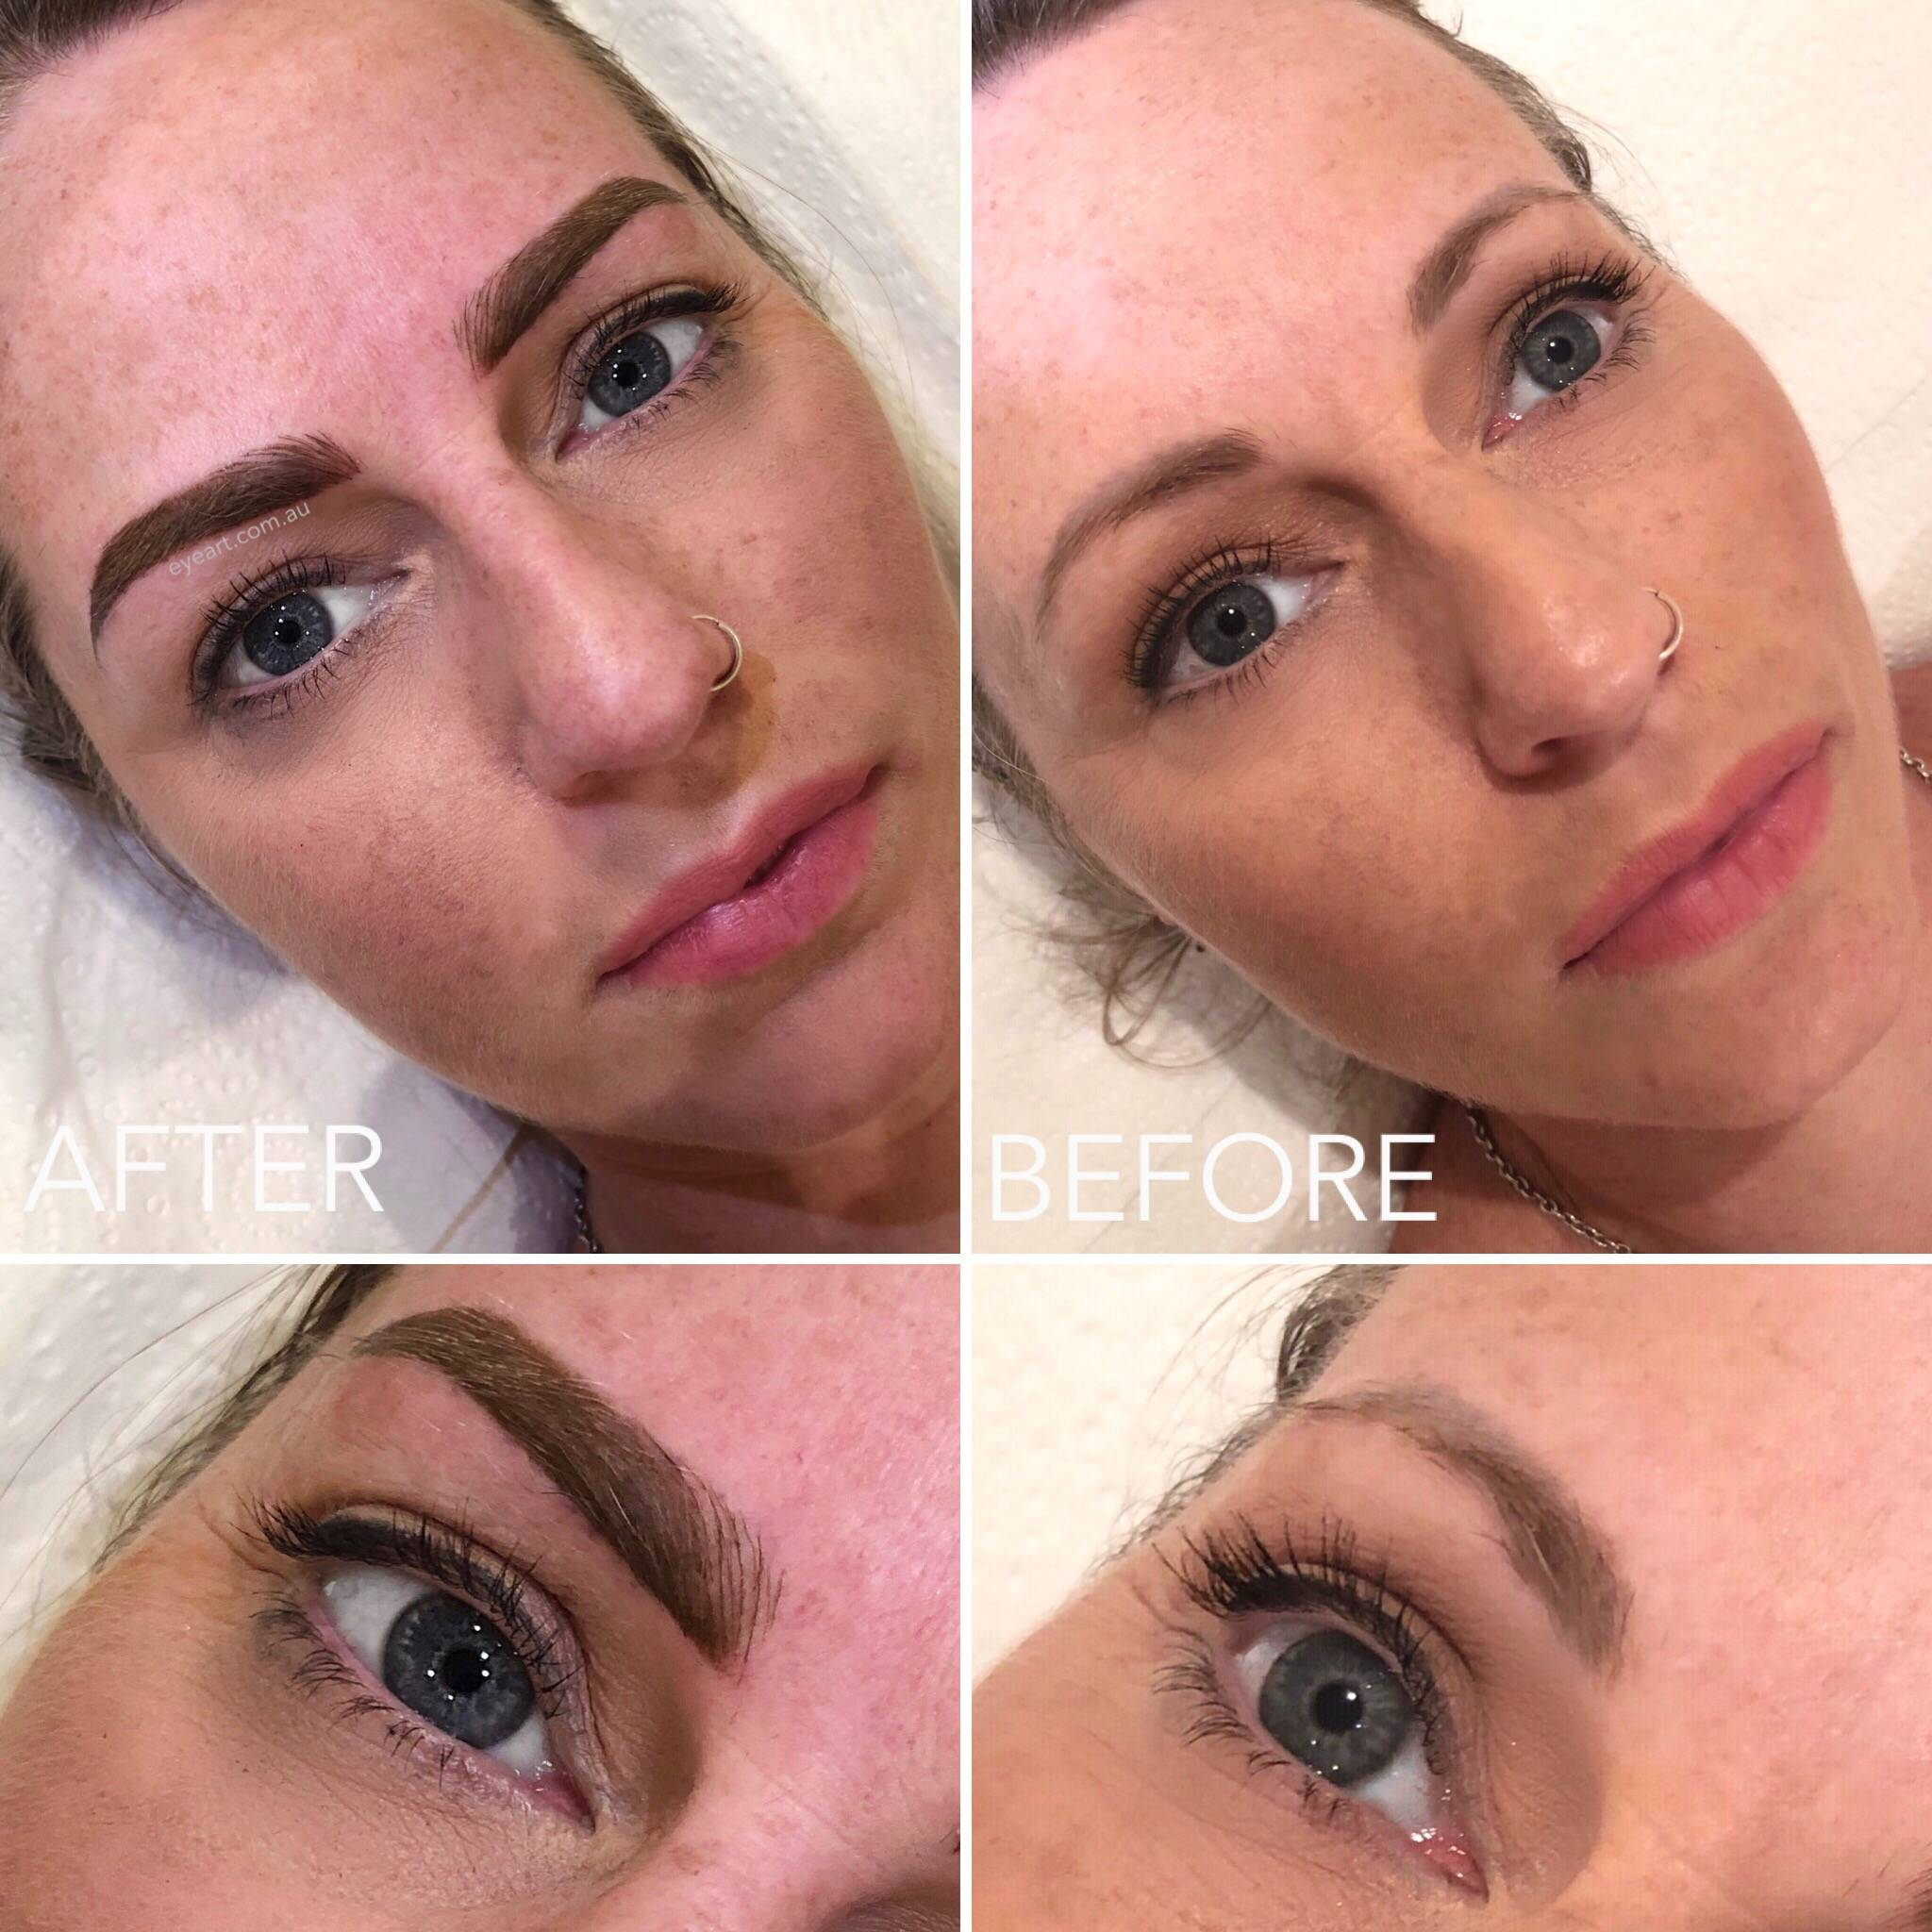 Eyebrow Tattoo Correction For Botched Eyebrow Tattoo Melbourne